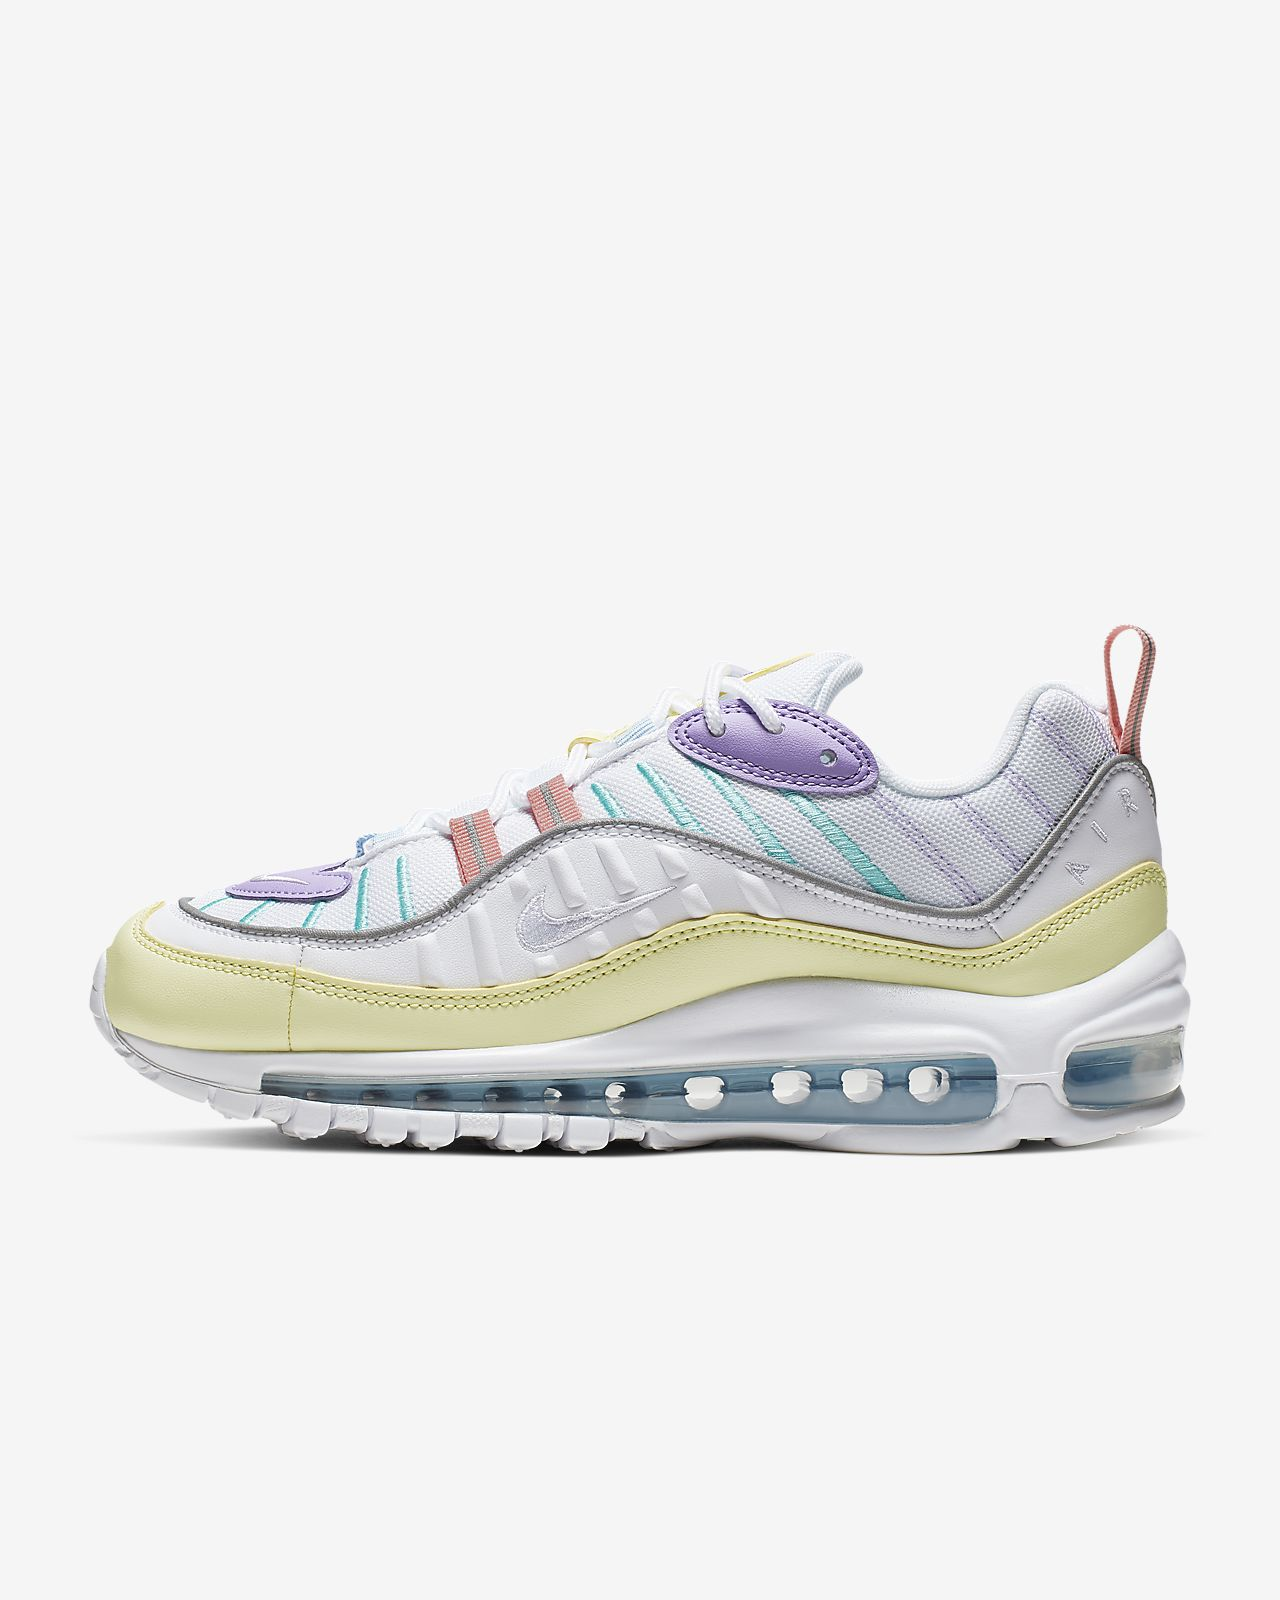 photos officielles 3a7ce 28f7c Nike Air Max 98 Women's Shoe